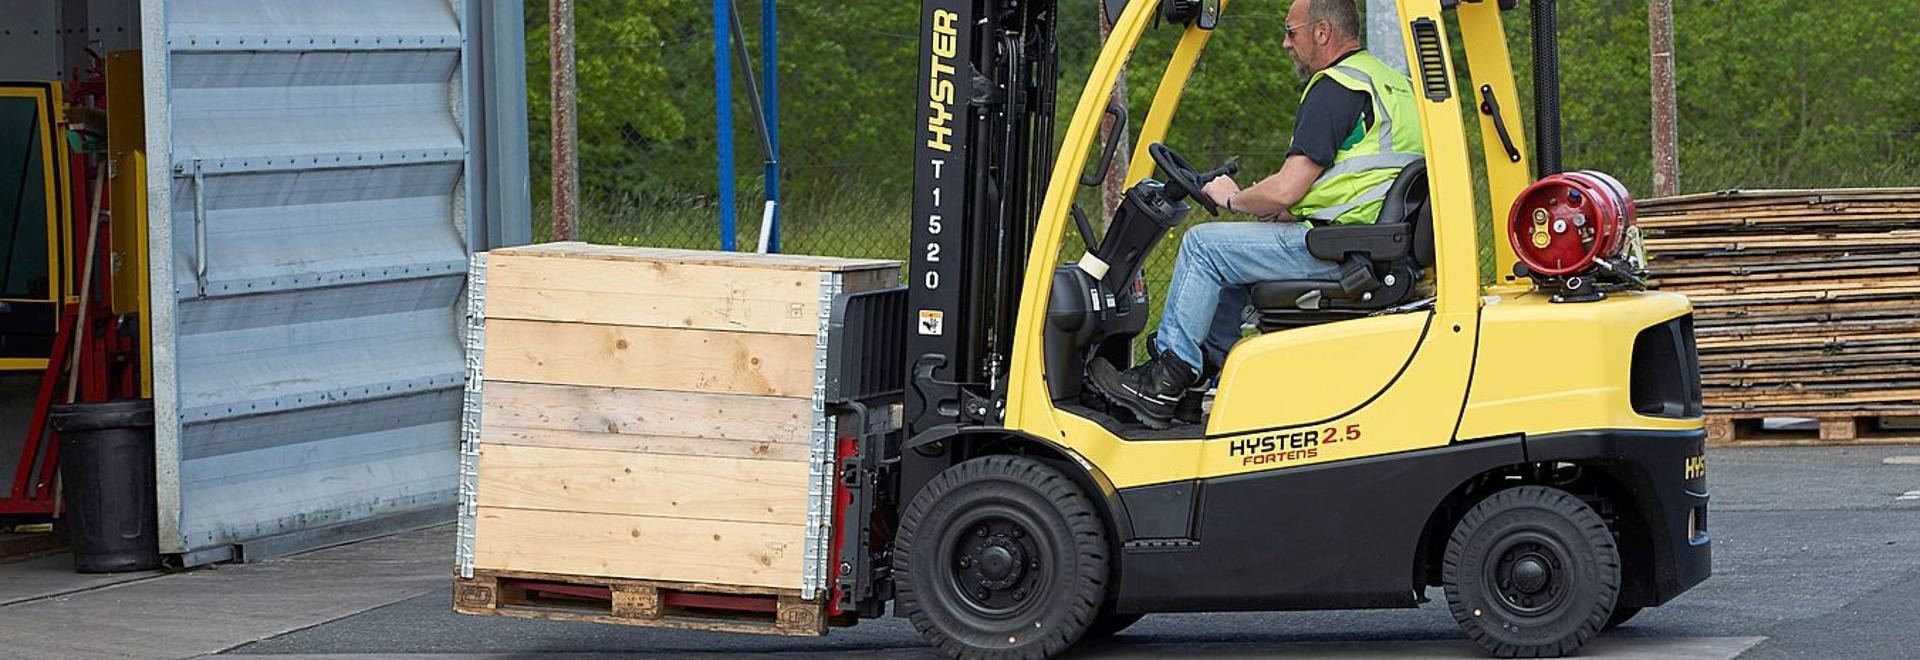 Hyster reveals 5 reliability checks for ICE forklift users